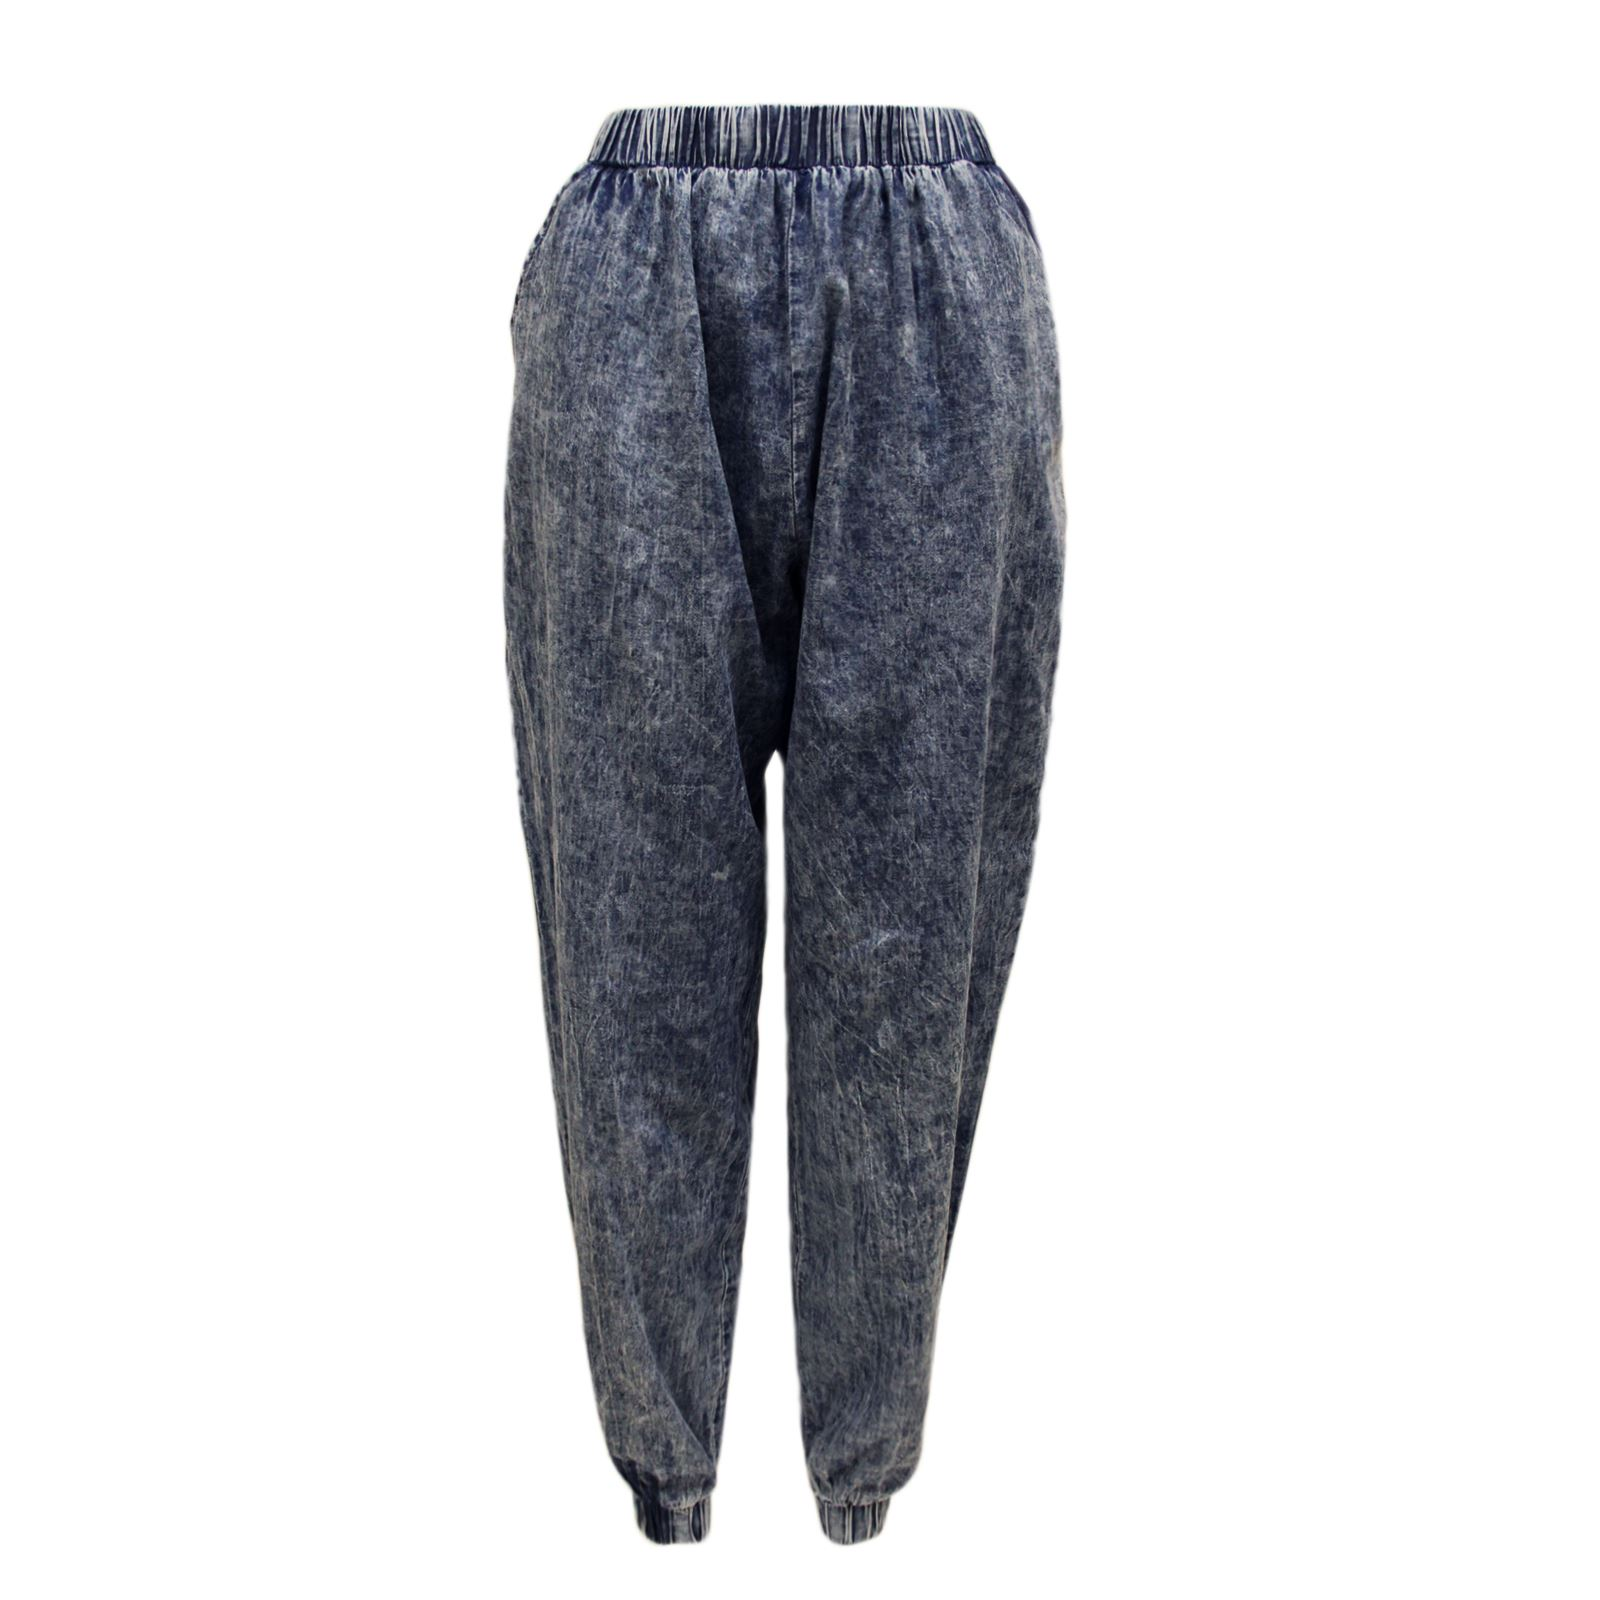 Michael Stars Women's Woven Linen Cuffed Trouser Shop Best Sellers· Deals of the Day· Fast Shipping· Read Ratings & Reviews2,,+ followers on Twitter.